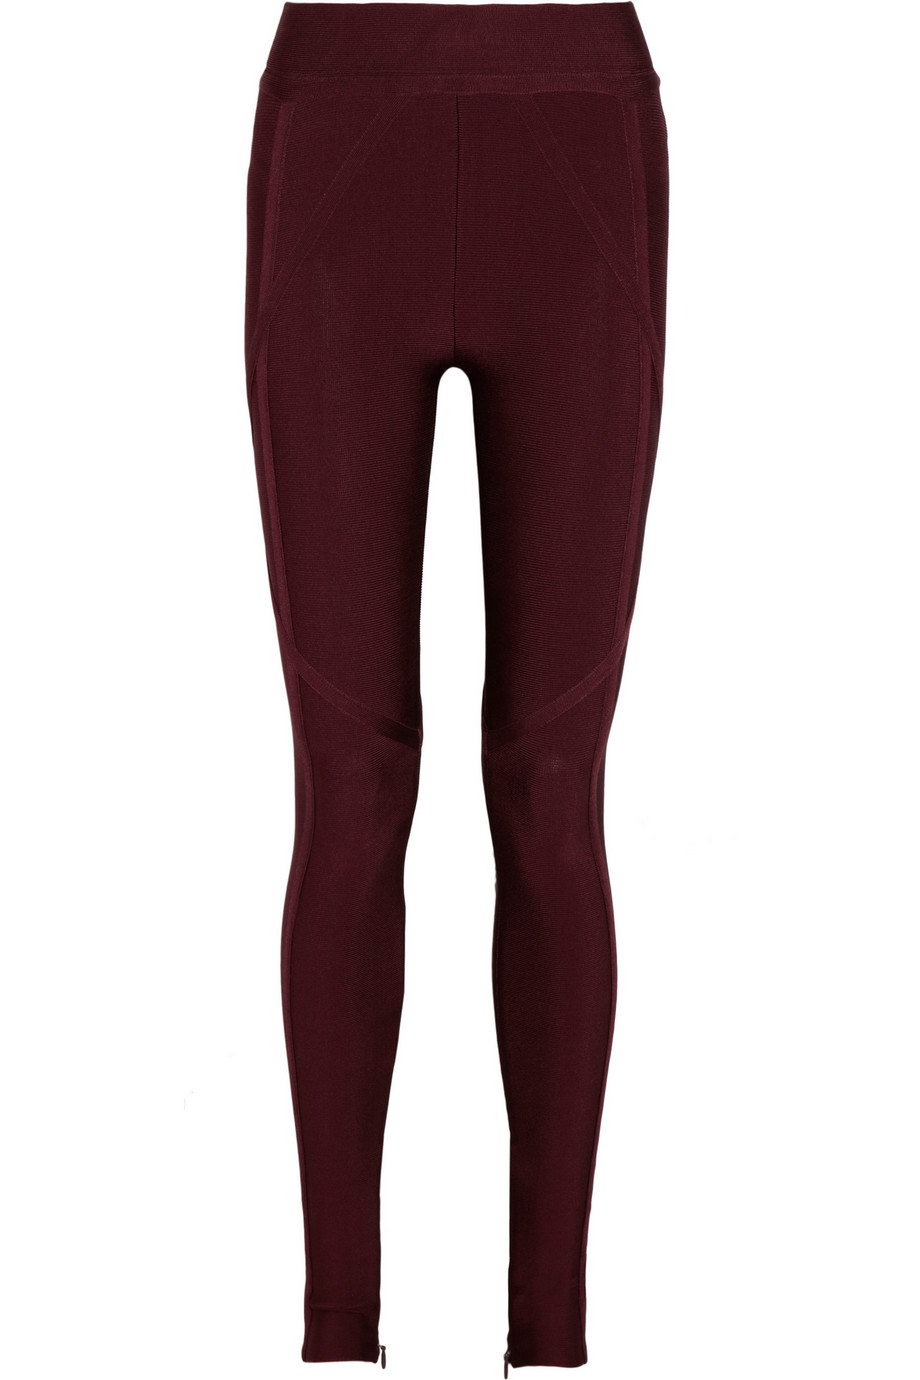 4fb7549e196b Turmec » herve leger leather paneled leggings for men